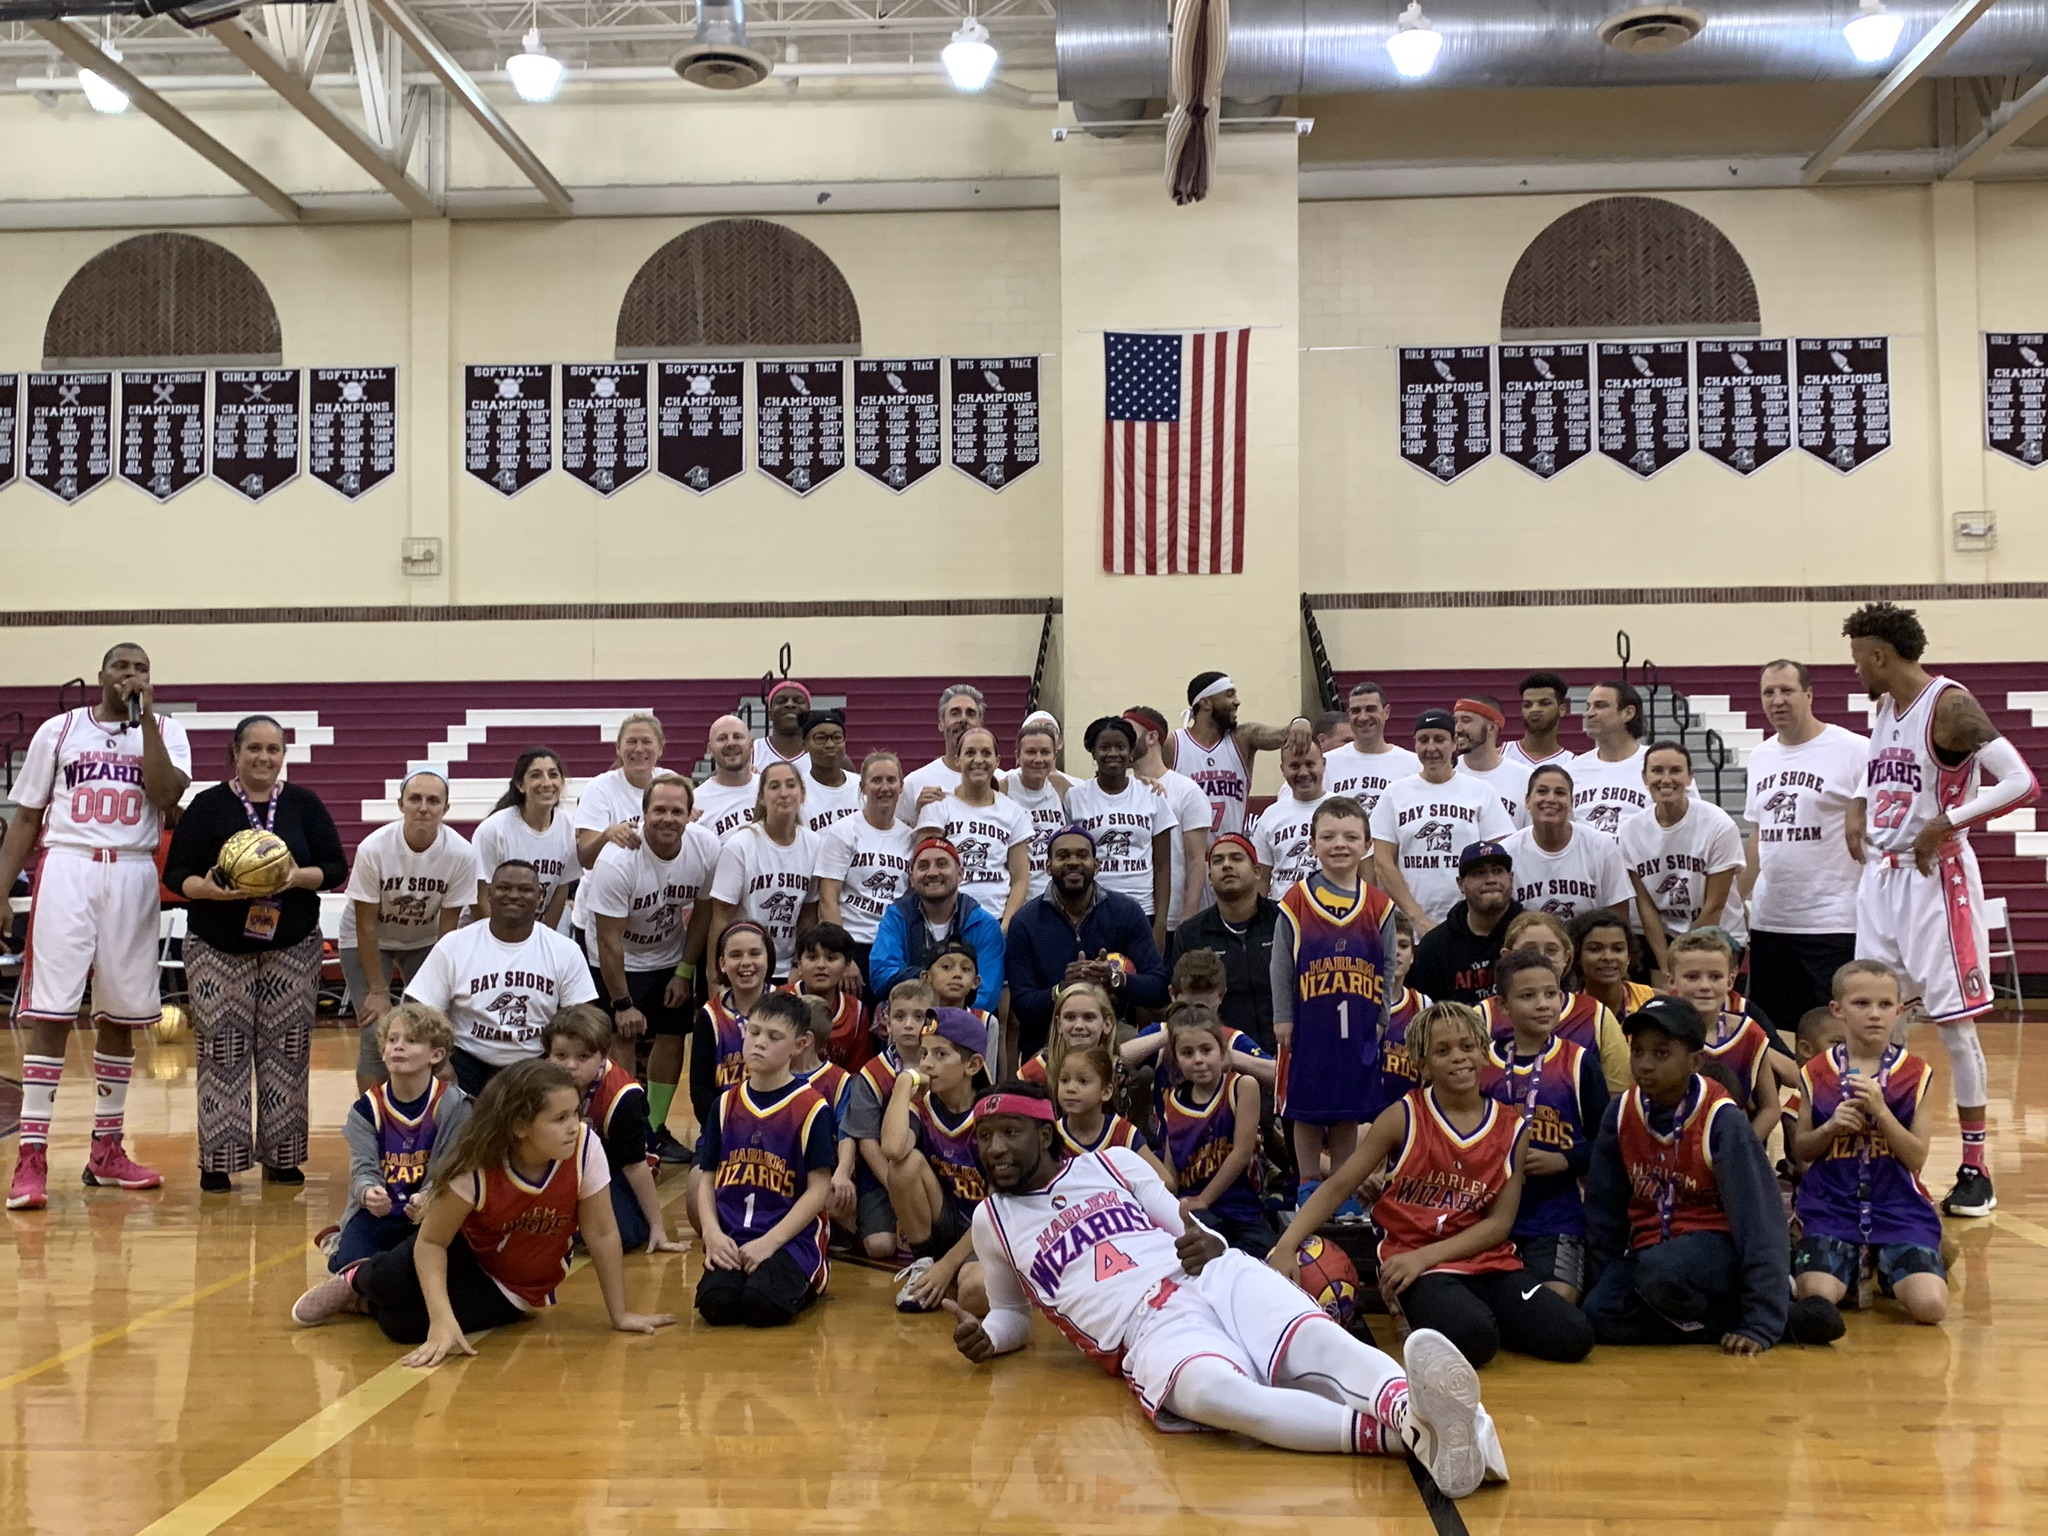 Harlem Wizards vs. Bay Shore Dream Team 10/30/19